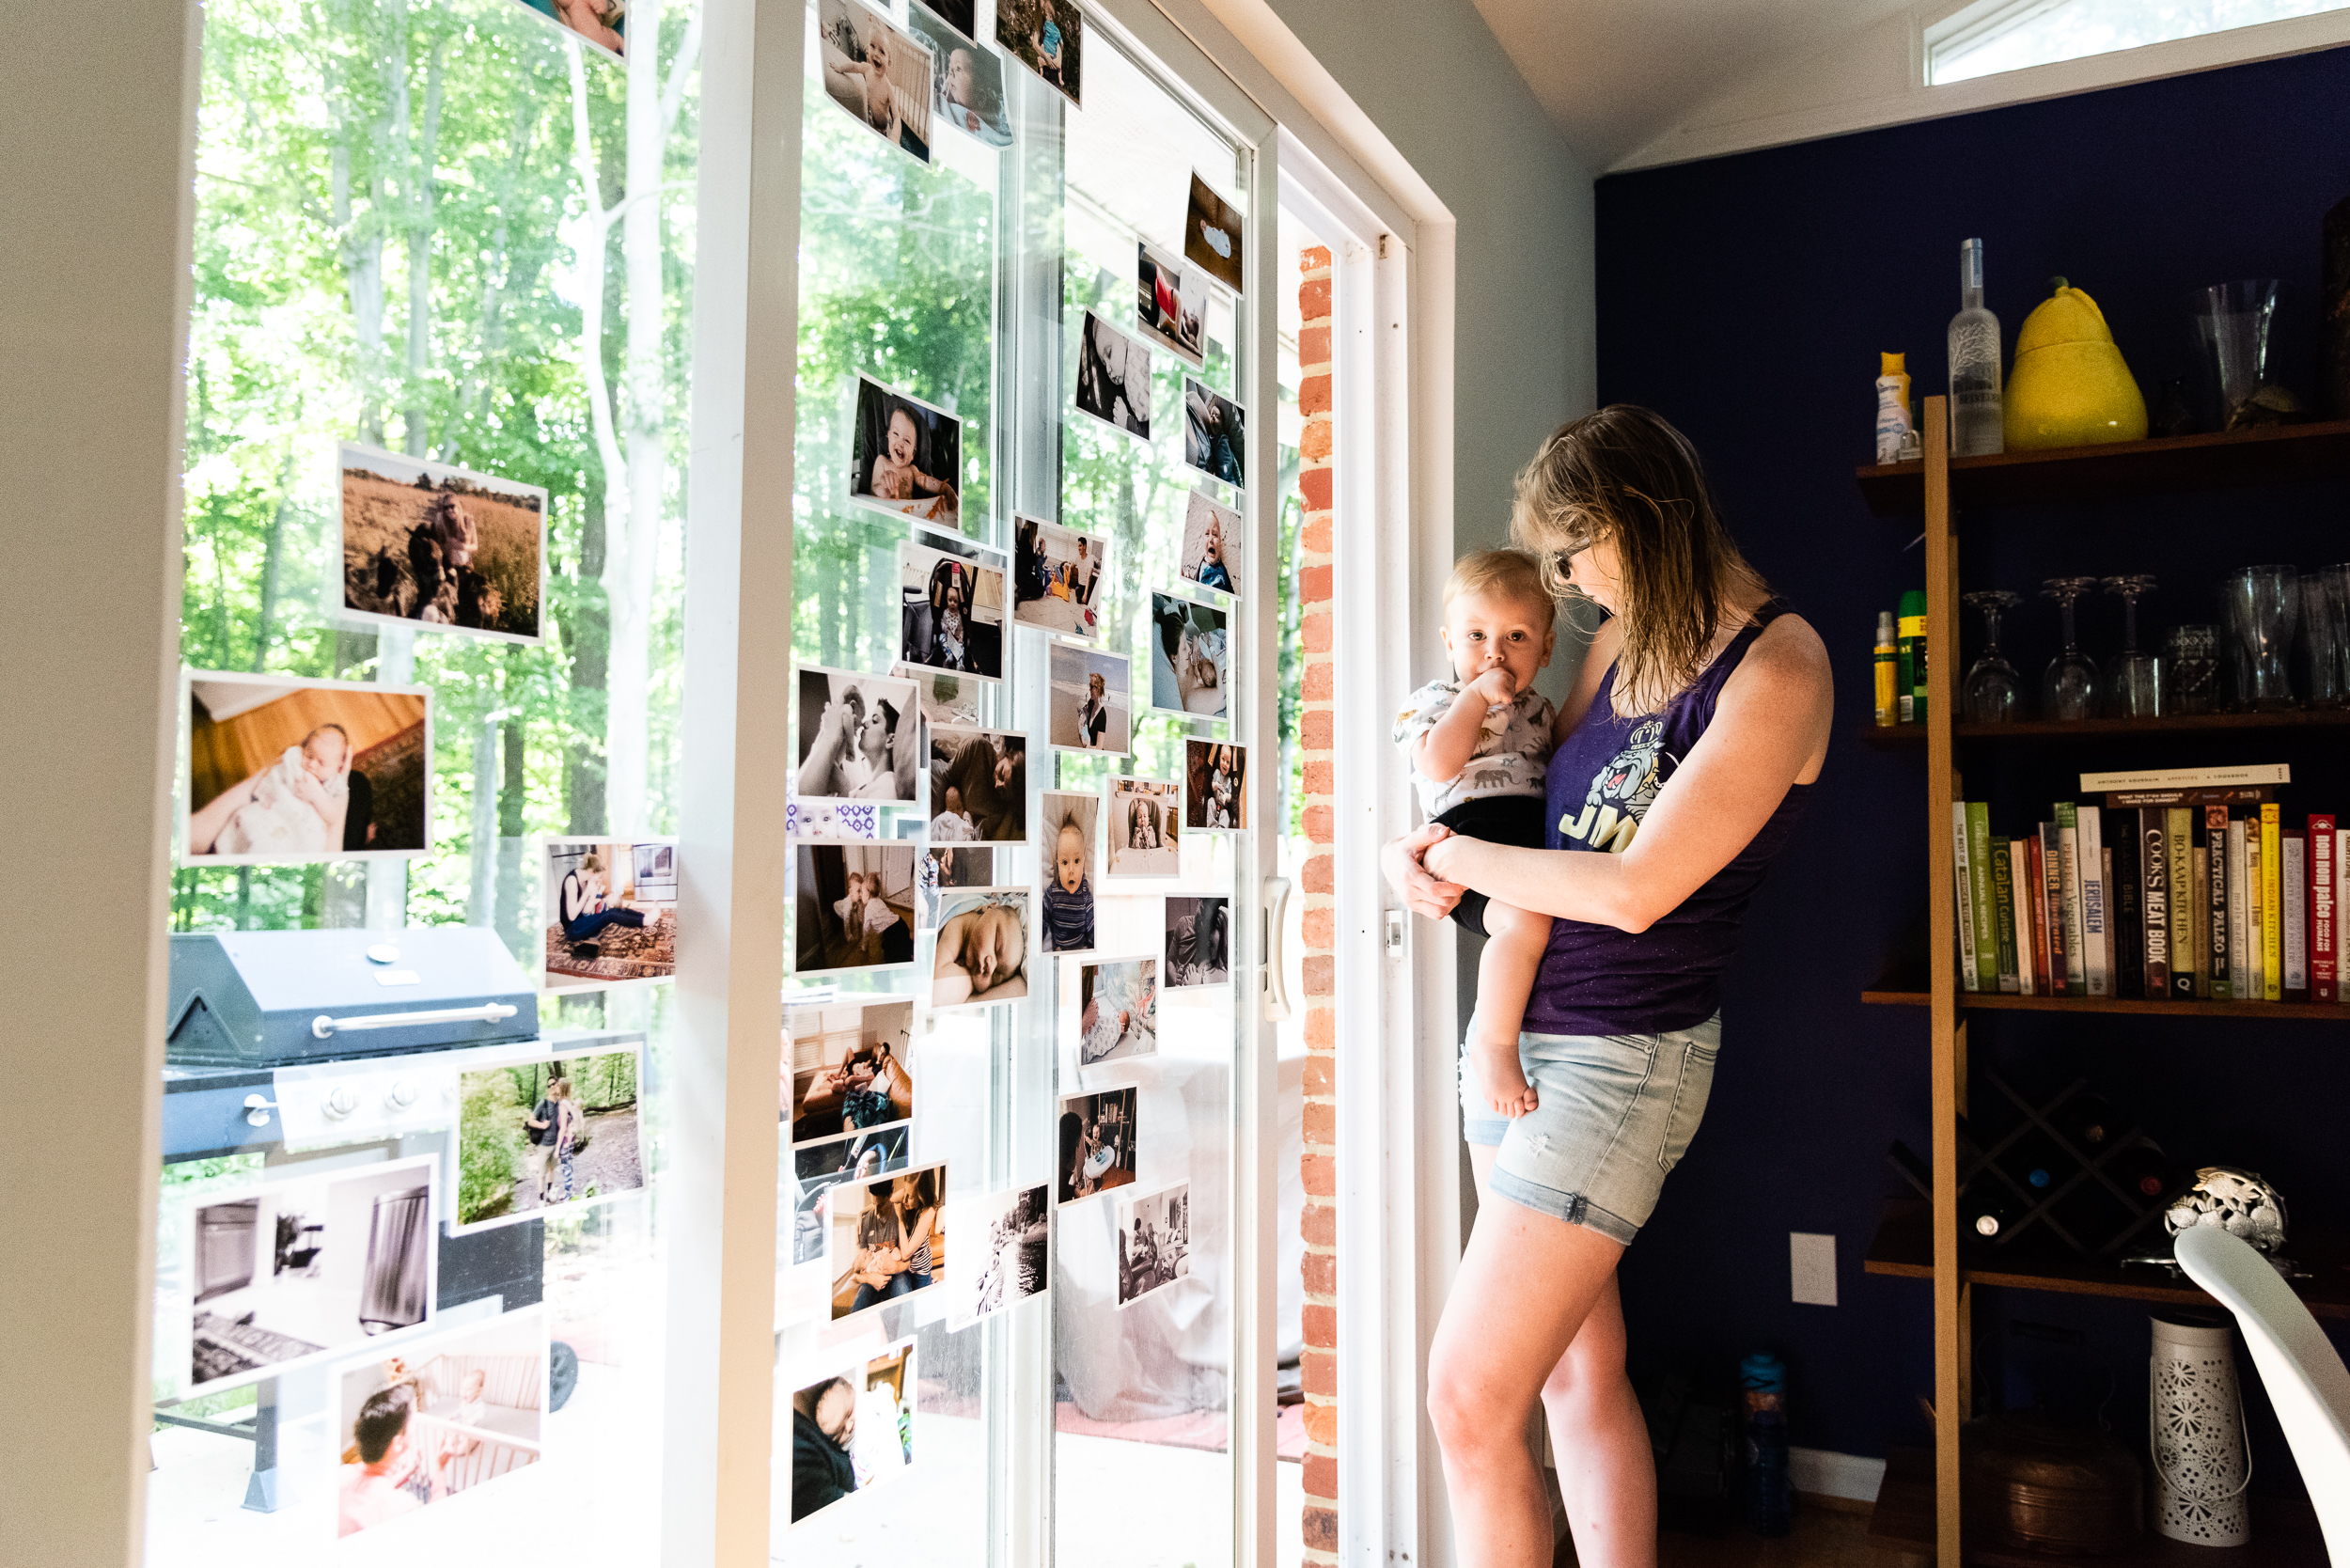 Mom holding baby at window by northern virginia family photographer nicole sanchez